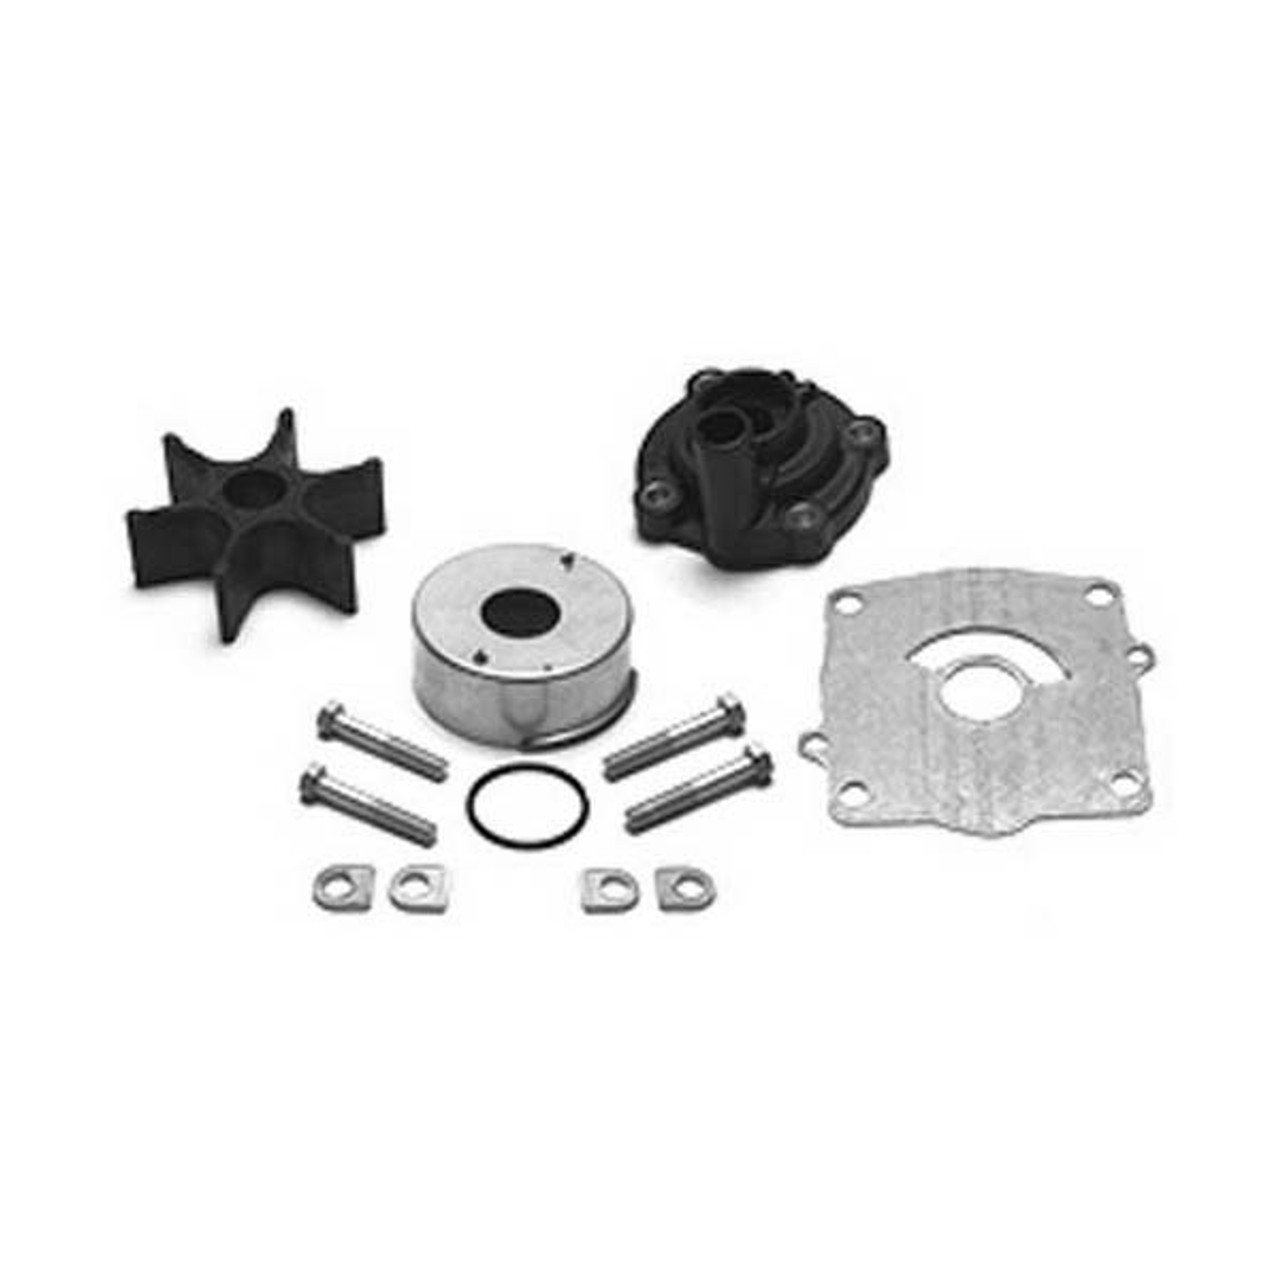 YAMAHA OUTBOARD 61A-W0078-A3-00 OEM WATER PUMP REPAIR KIT OEM PART 61AW0078A300